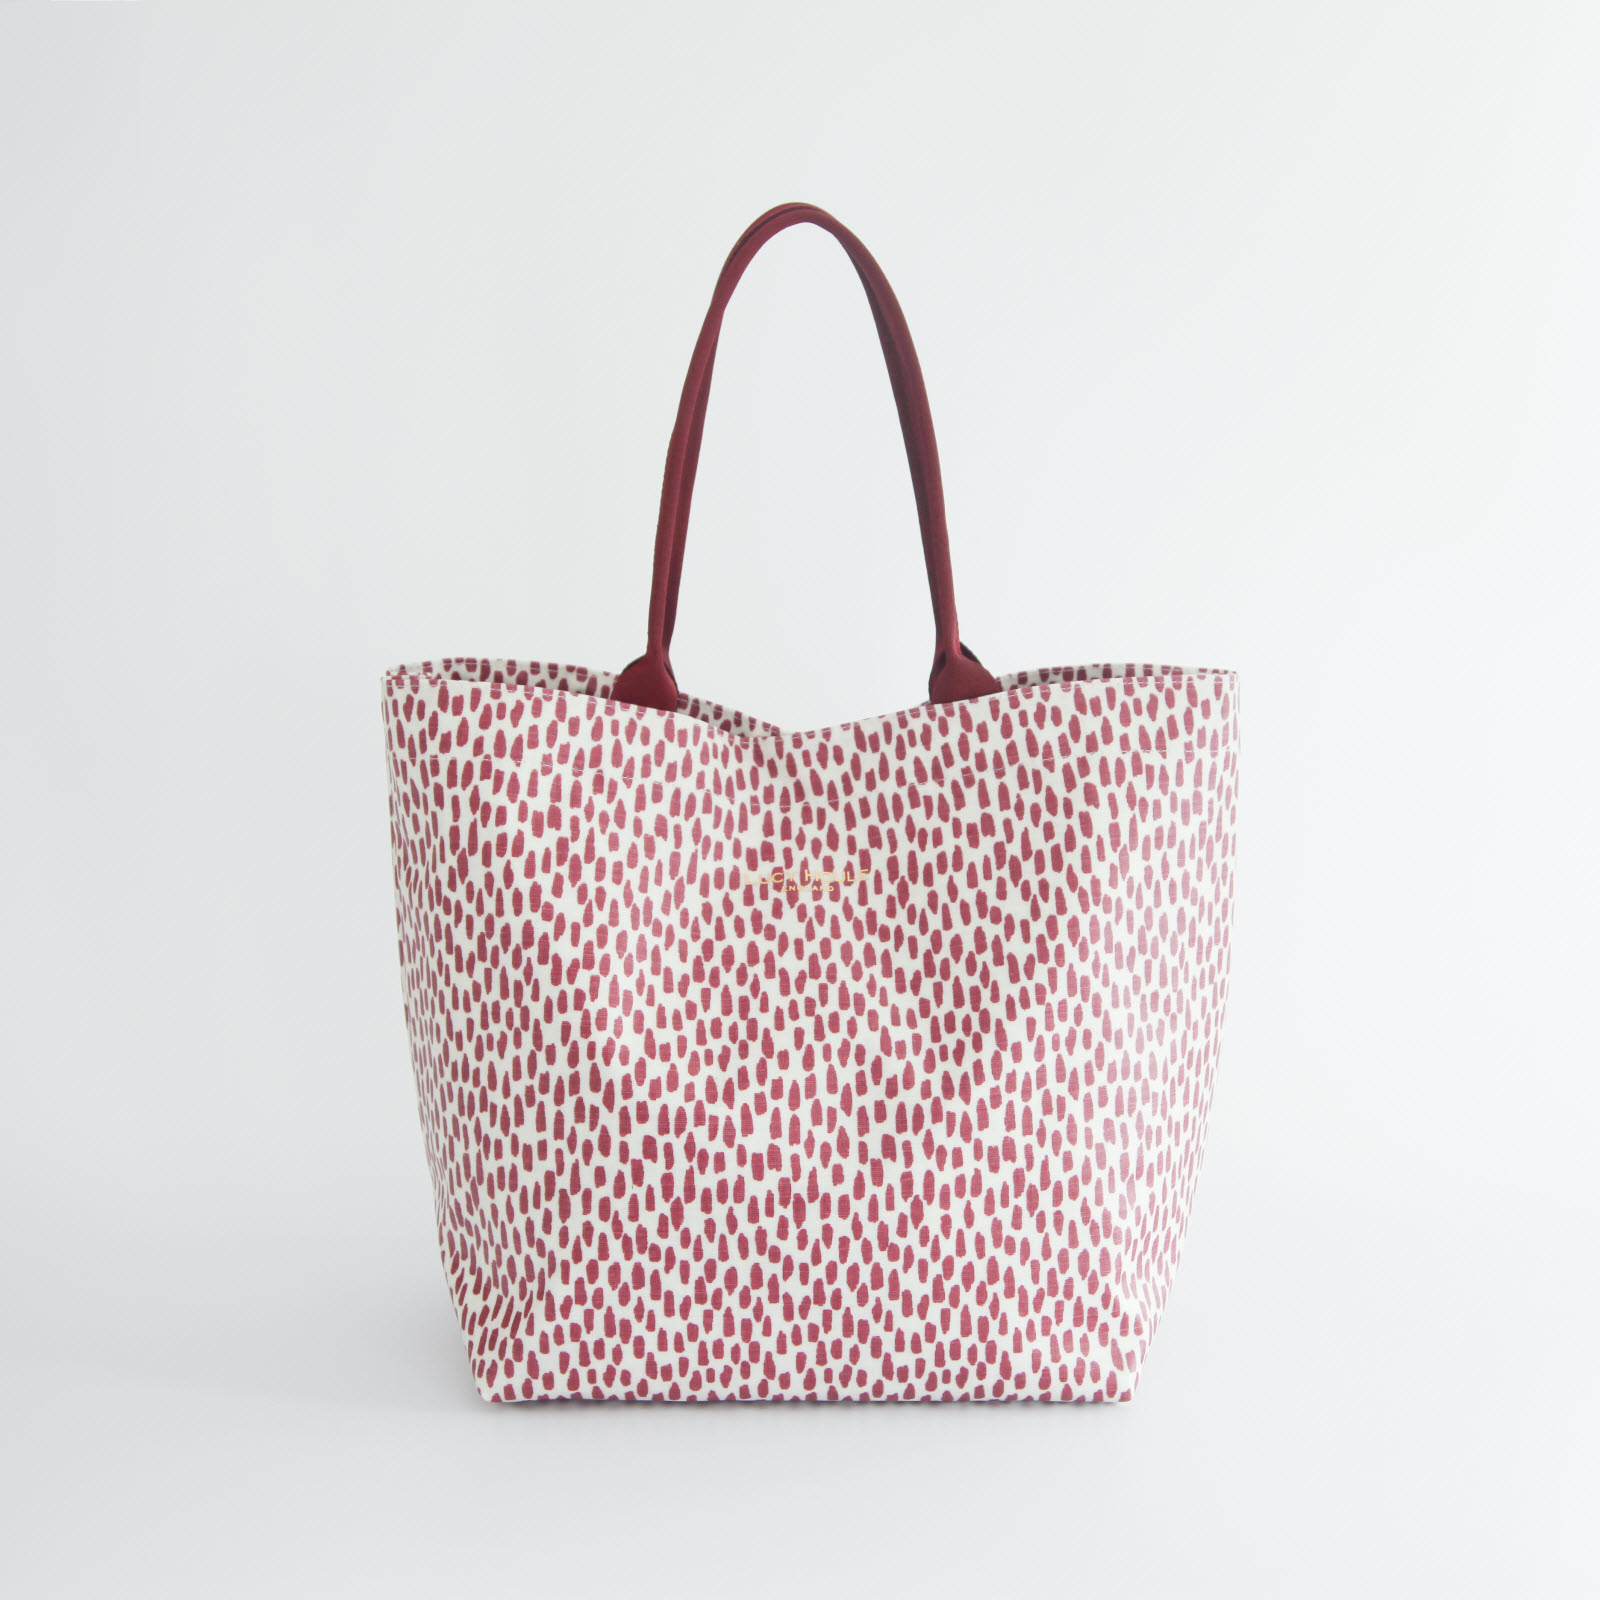 Mulberry Cobblestone Large Tote Bag 'Limited Edition'